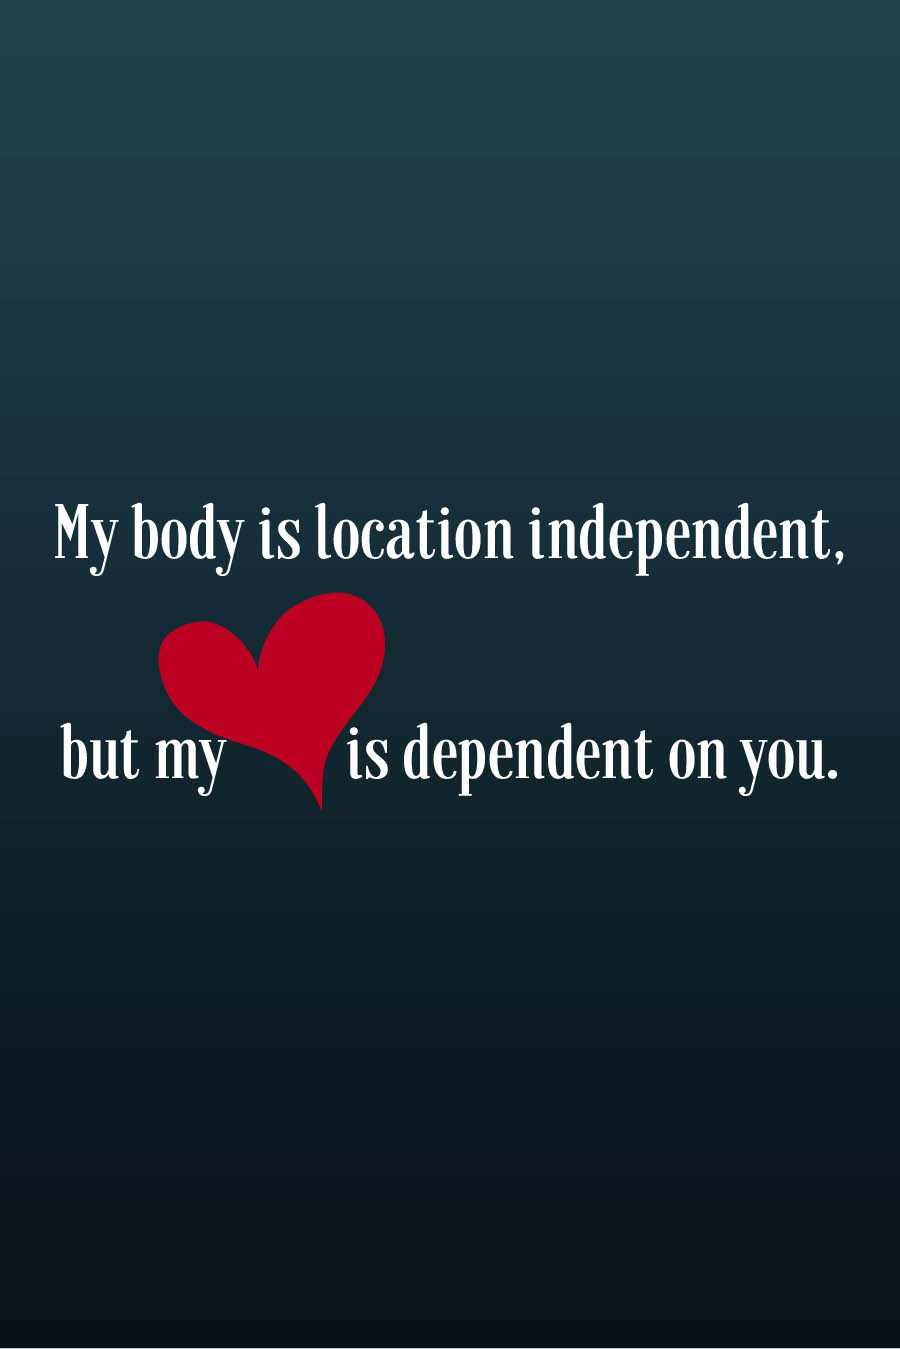 My body is location independent but my heart is dependent on you. | Valentines for Travel Bloggers